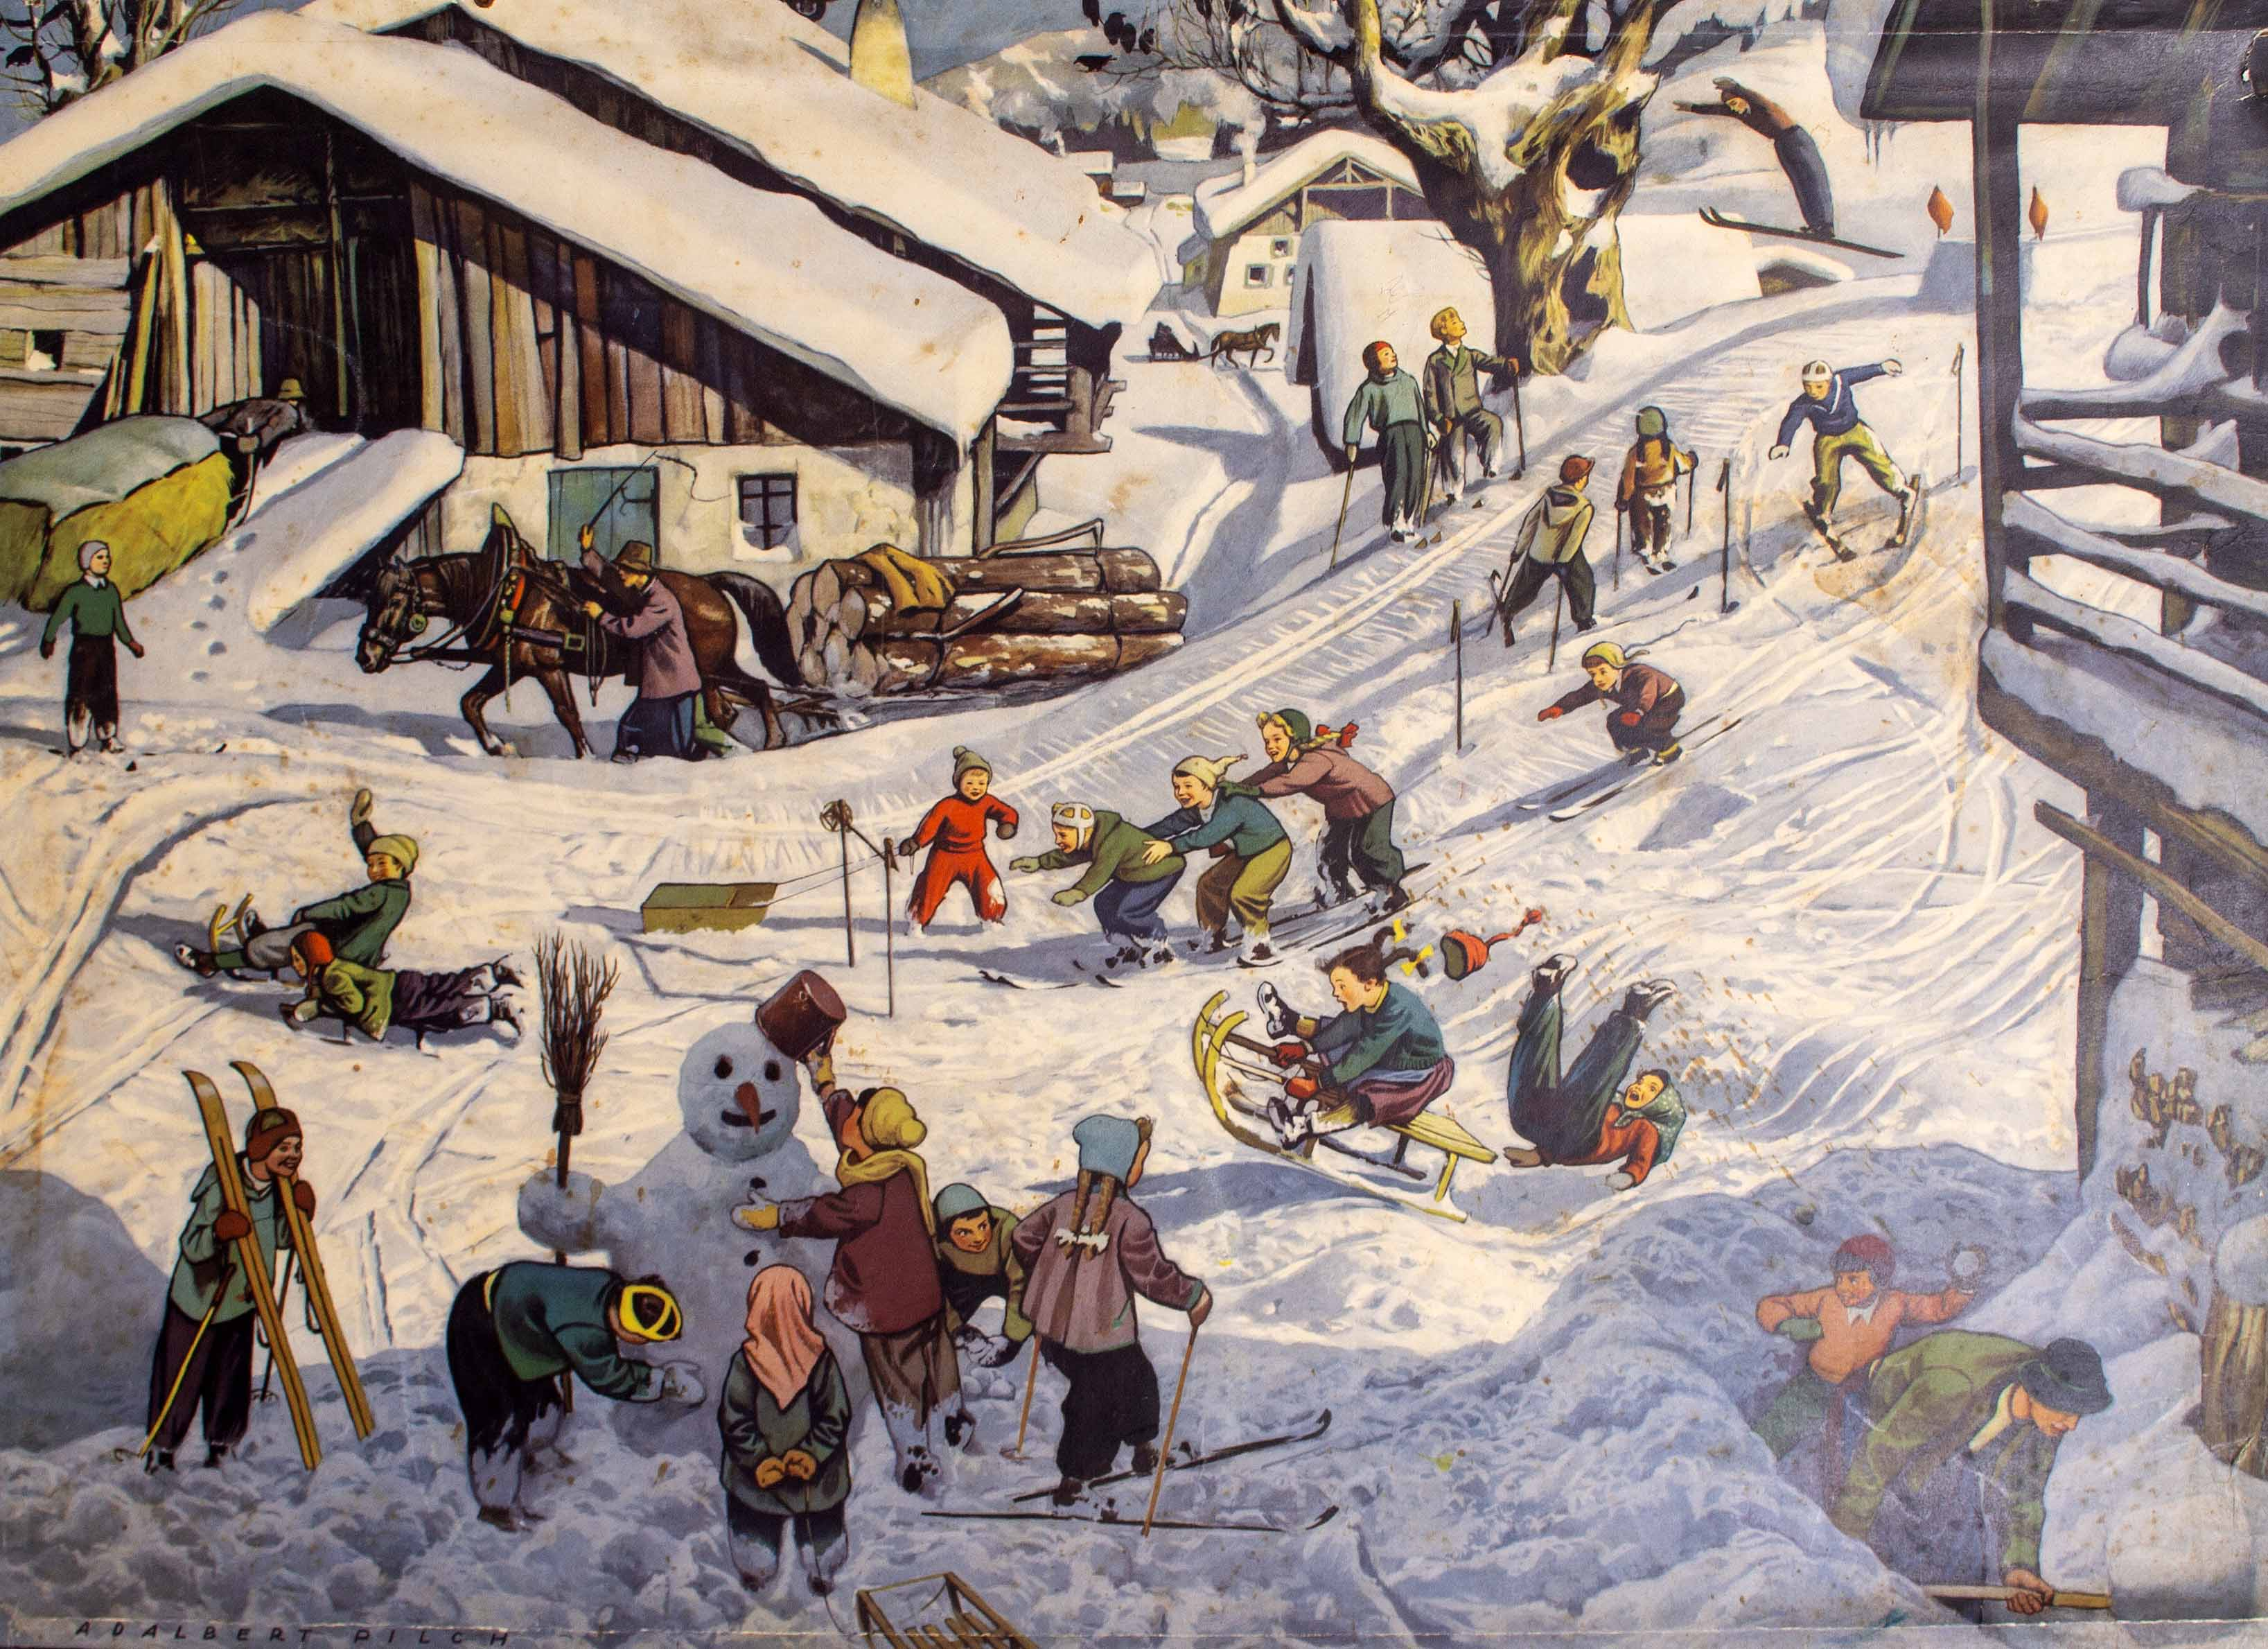 Lot 41 - A GERMAN MID 20TH CENTURY EDUCATIONAL POSTER depicting a winter scene, after an original picture